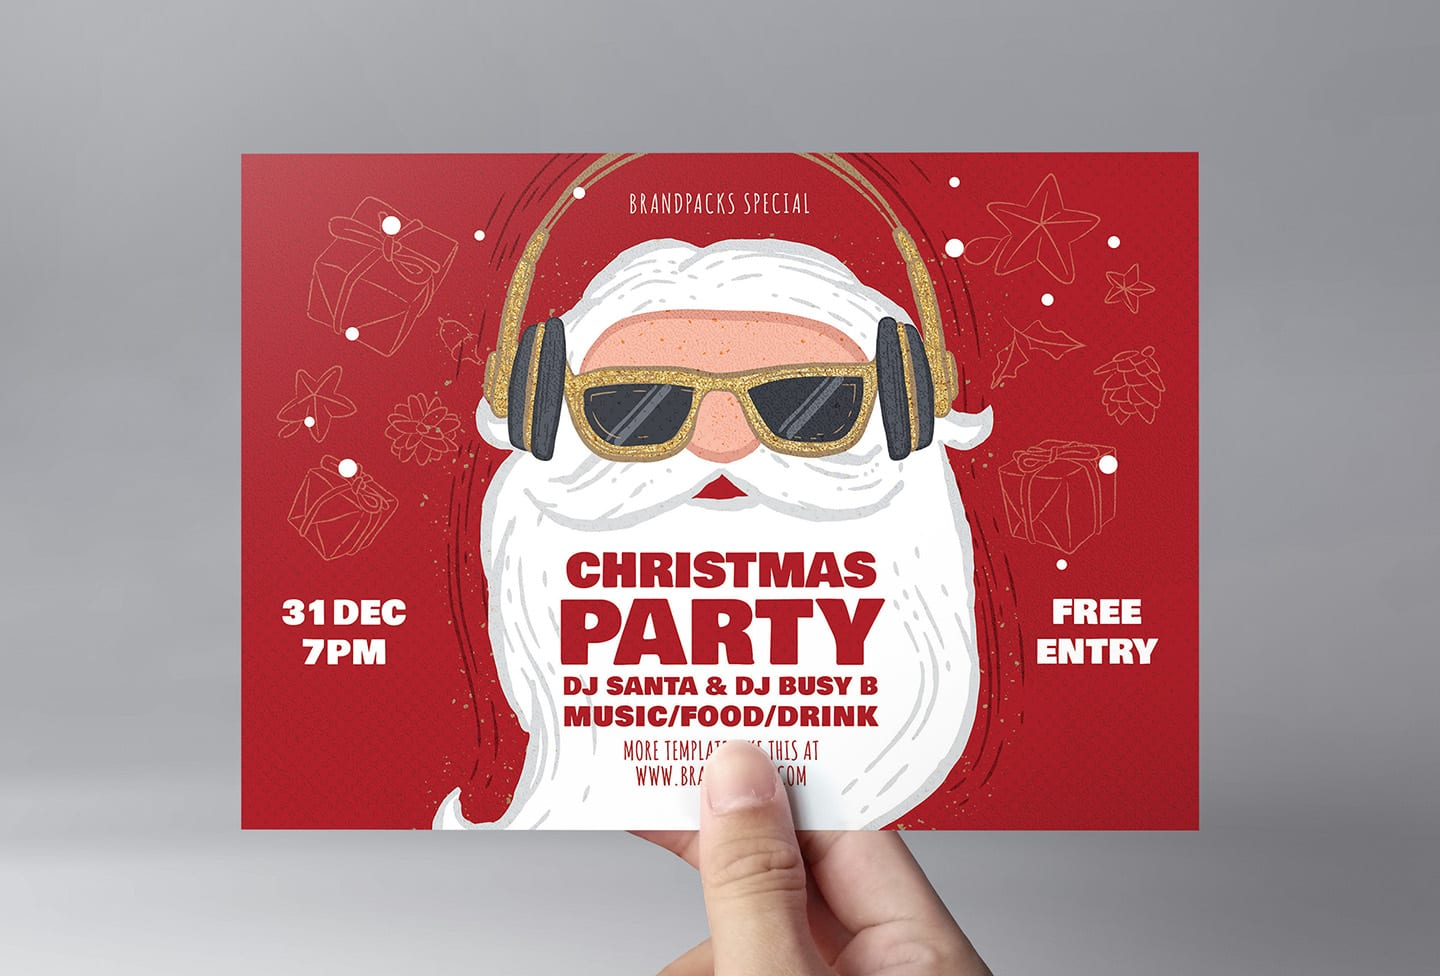 Christmas Party Flyer Template.Christmas Party Flyer Template Psd Ai Vector Brandpacks